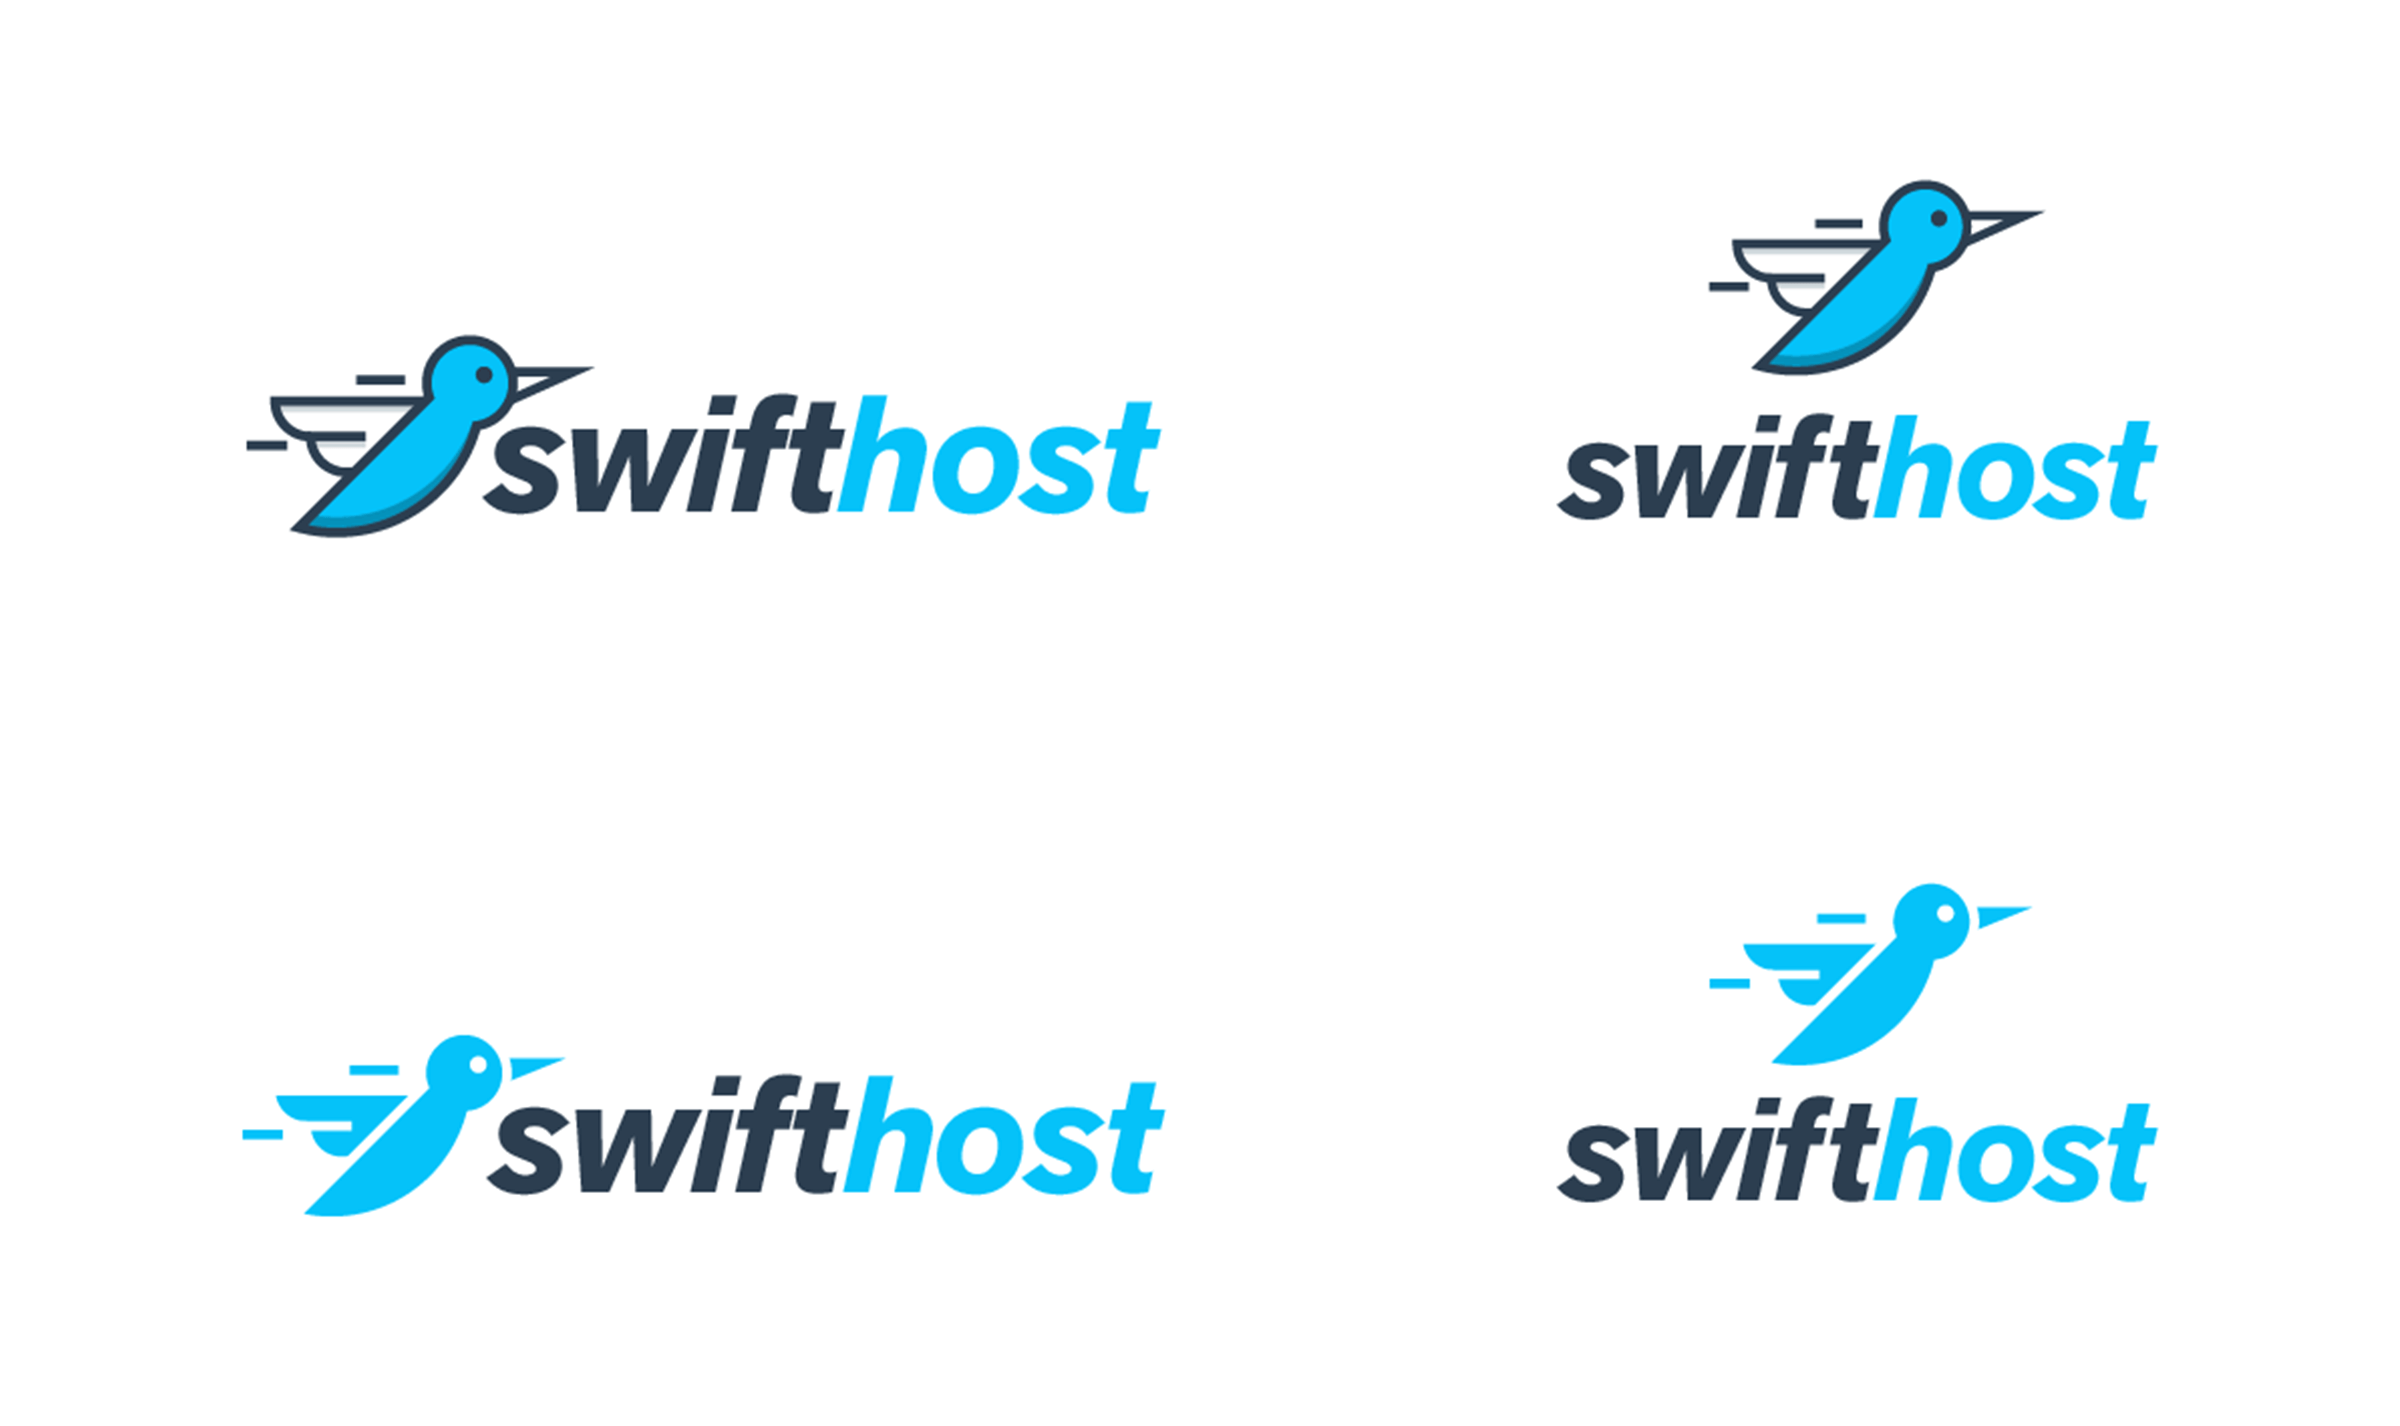 Why Xtmhost changed its name to SwiftHost